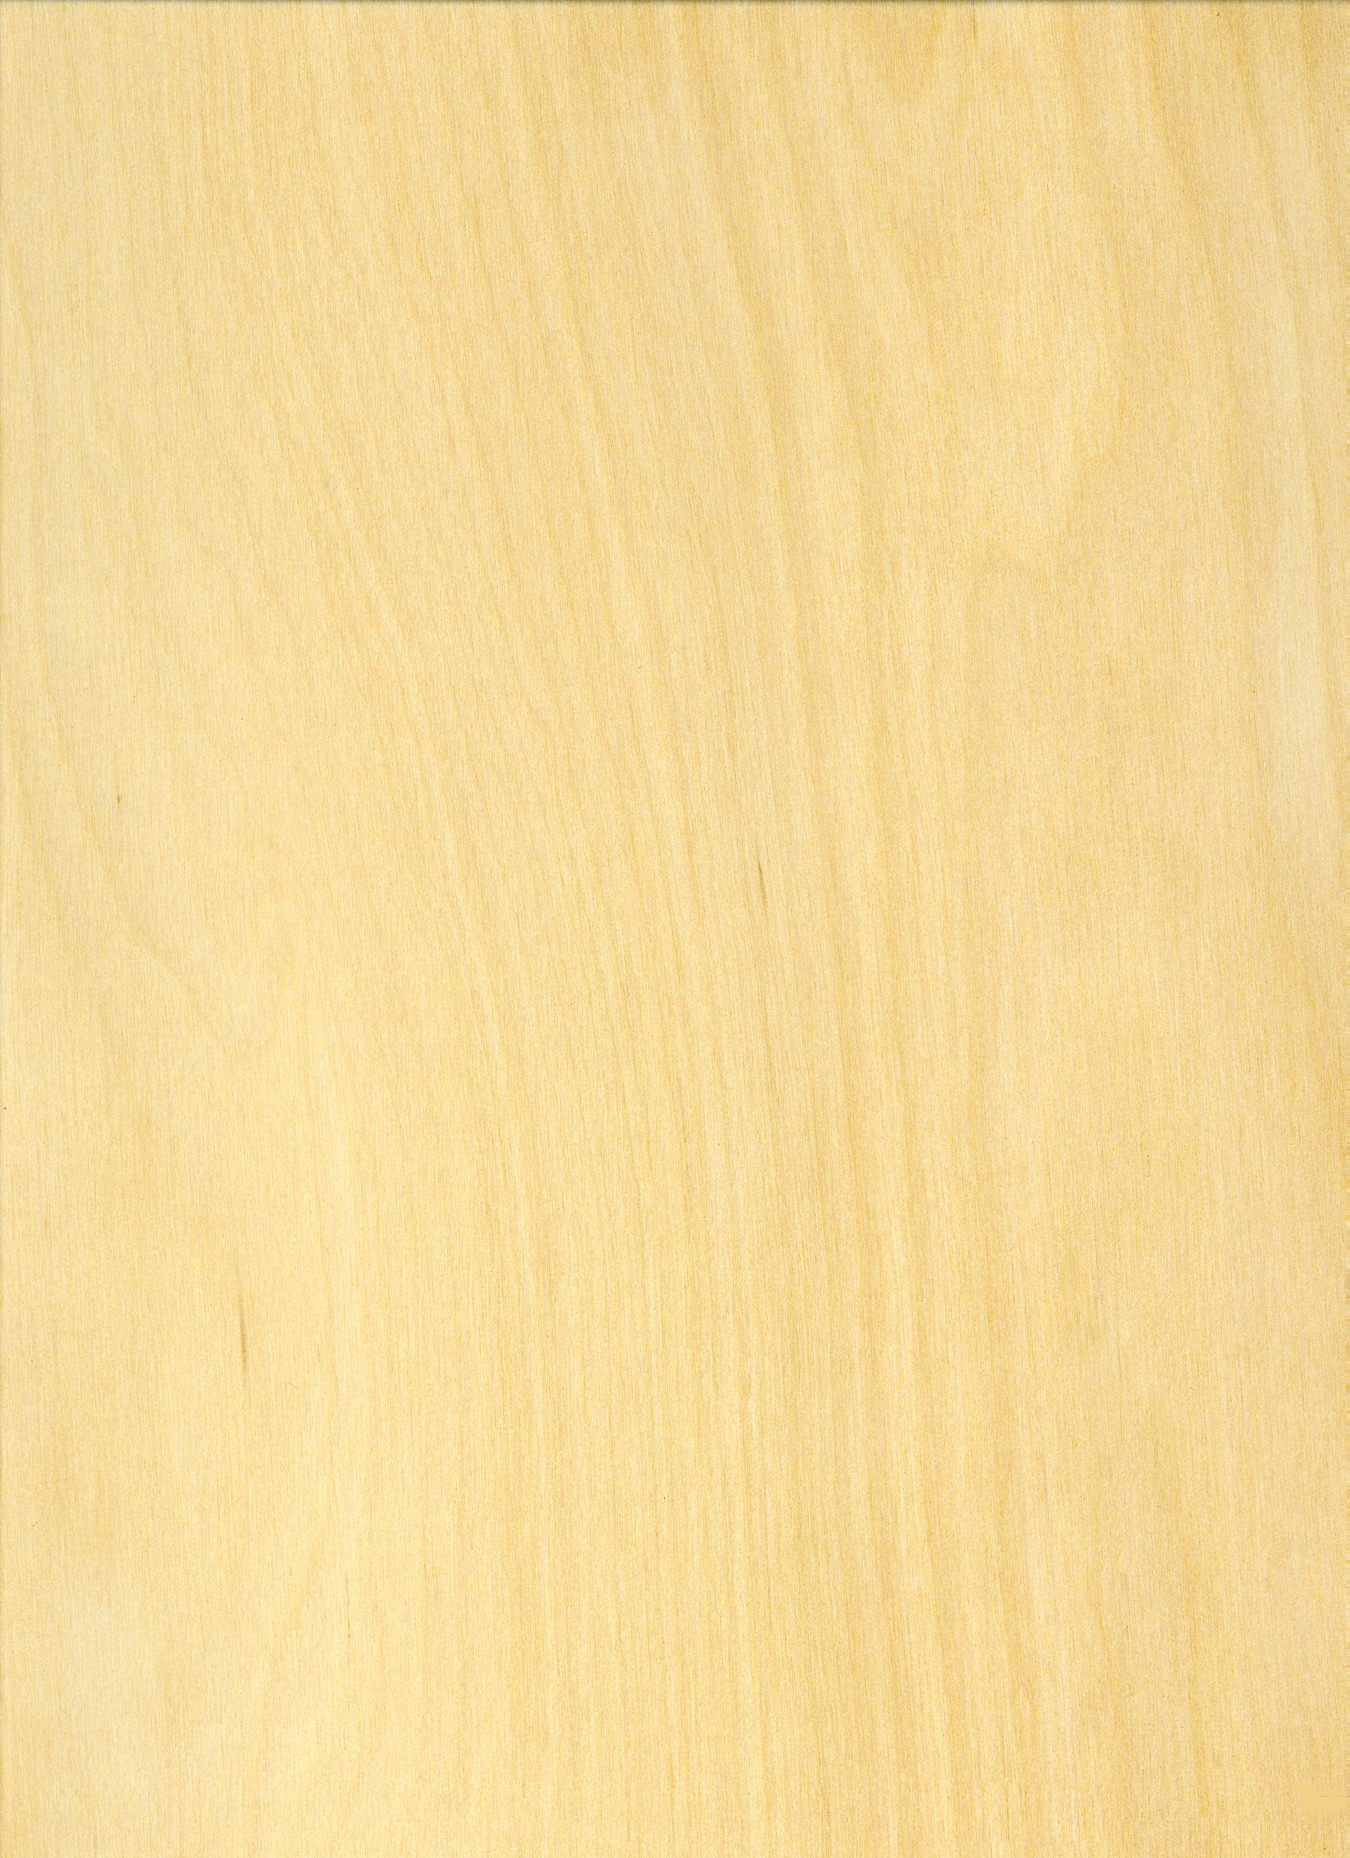 Wood Grain: Woodworking Patterns Furniture